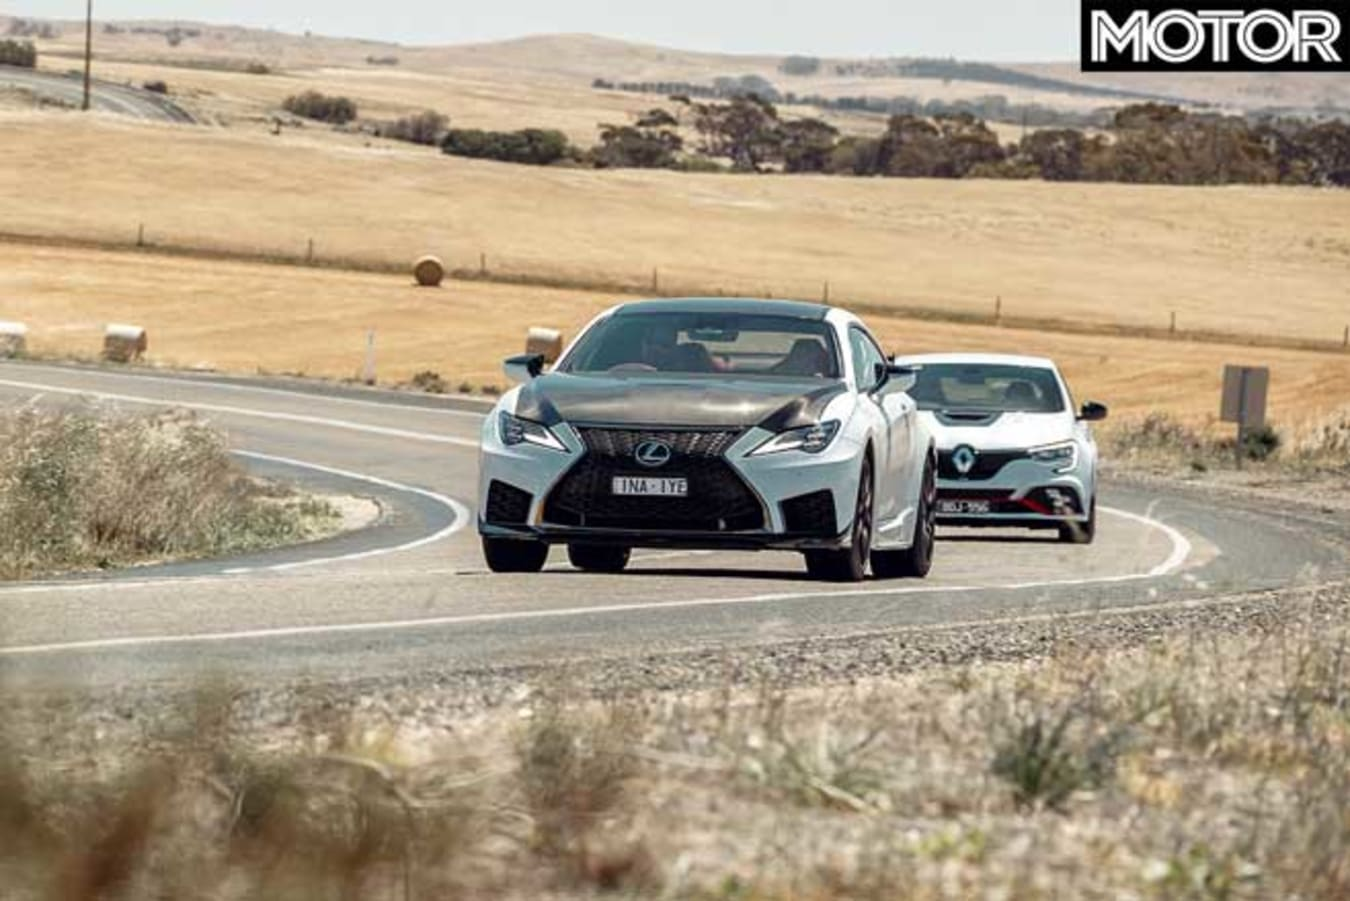 Performance Car Of The Year 2020 Road Course Lexus RC F Track Edition Drive Review Jpg